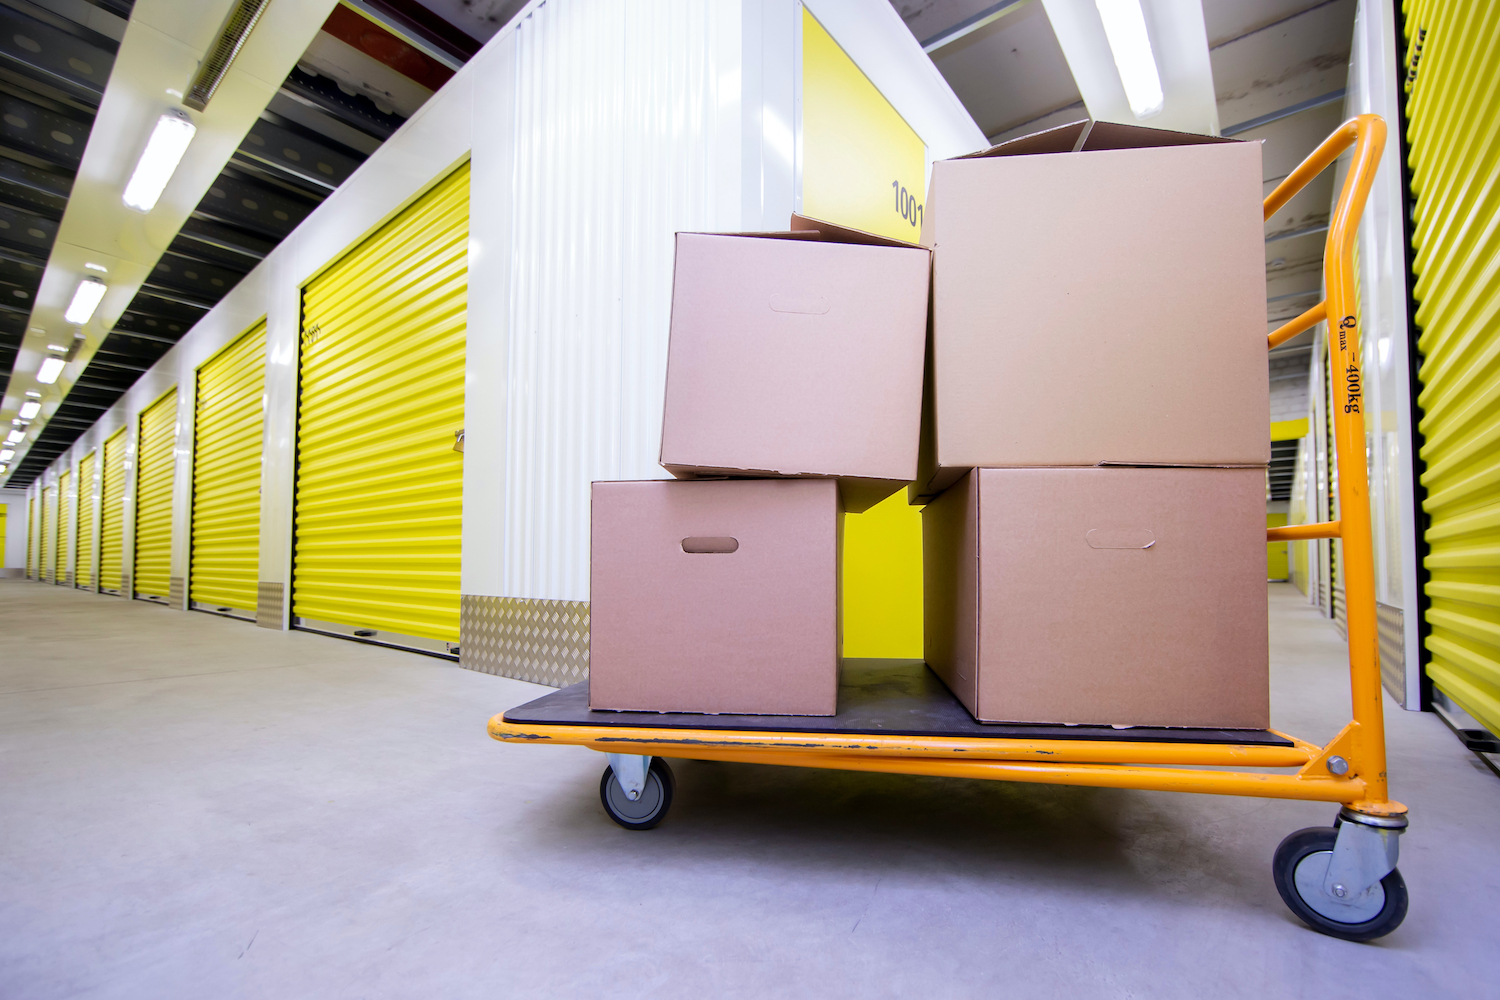 Book a home or business self-storage unit at SureStore Ashton